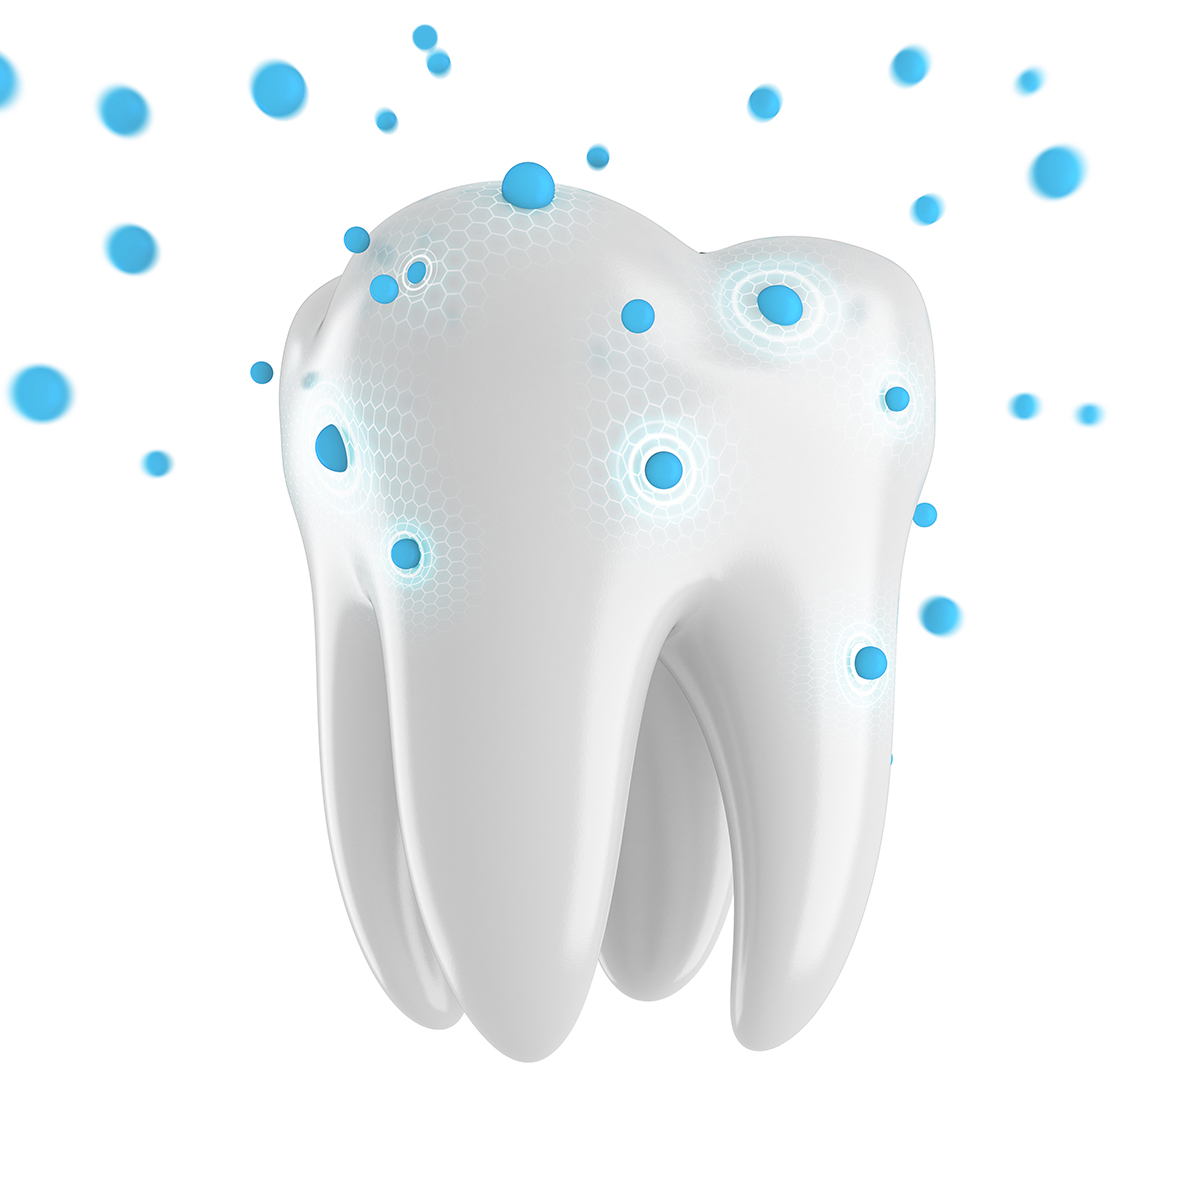 Dental Care Tips For You And Your Enamel